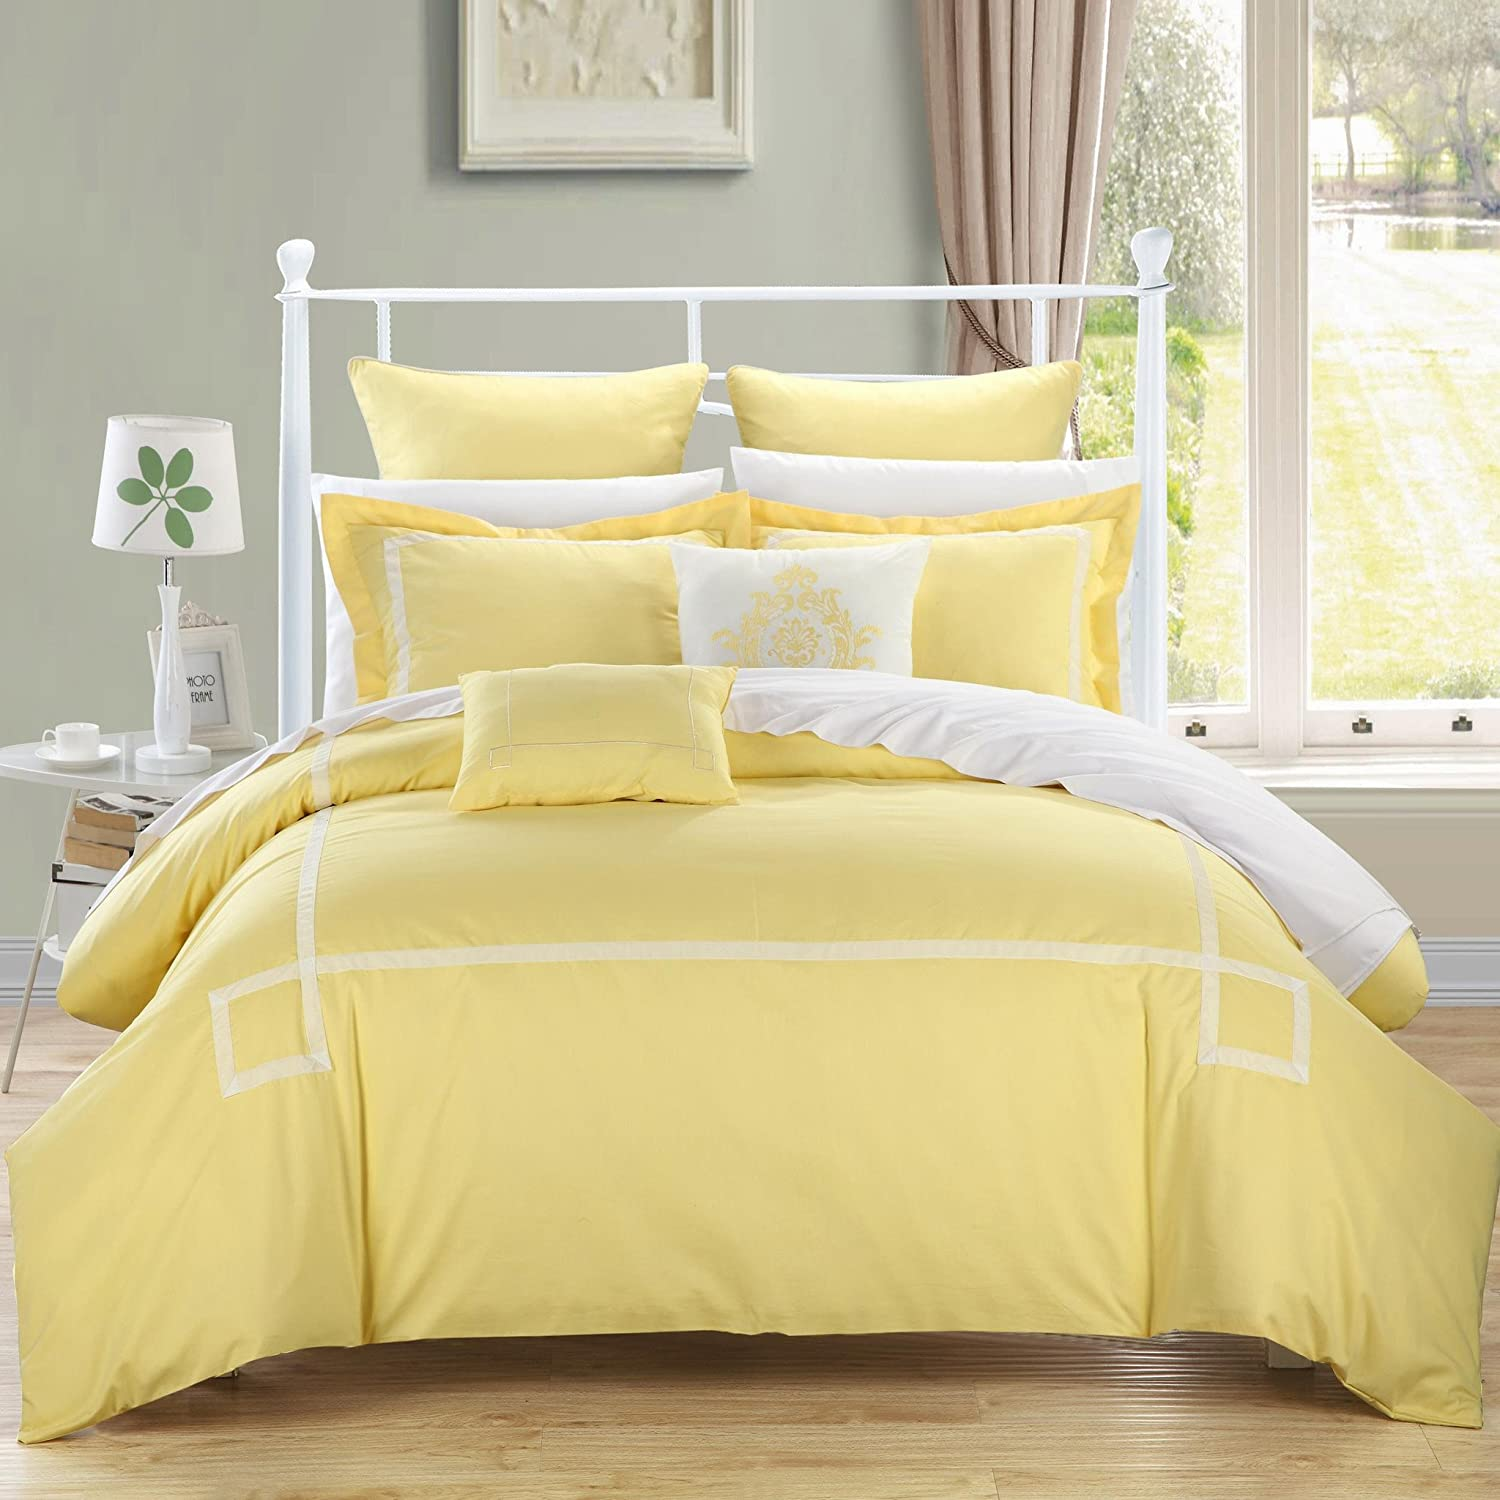 hei bedding usm wid garden duvet fmt grey covers geometric yellow home default bed p qlt resmode george pd cover sharp stripe op